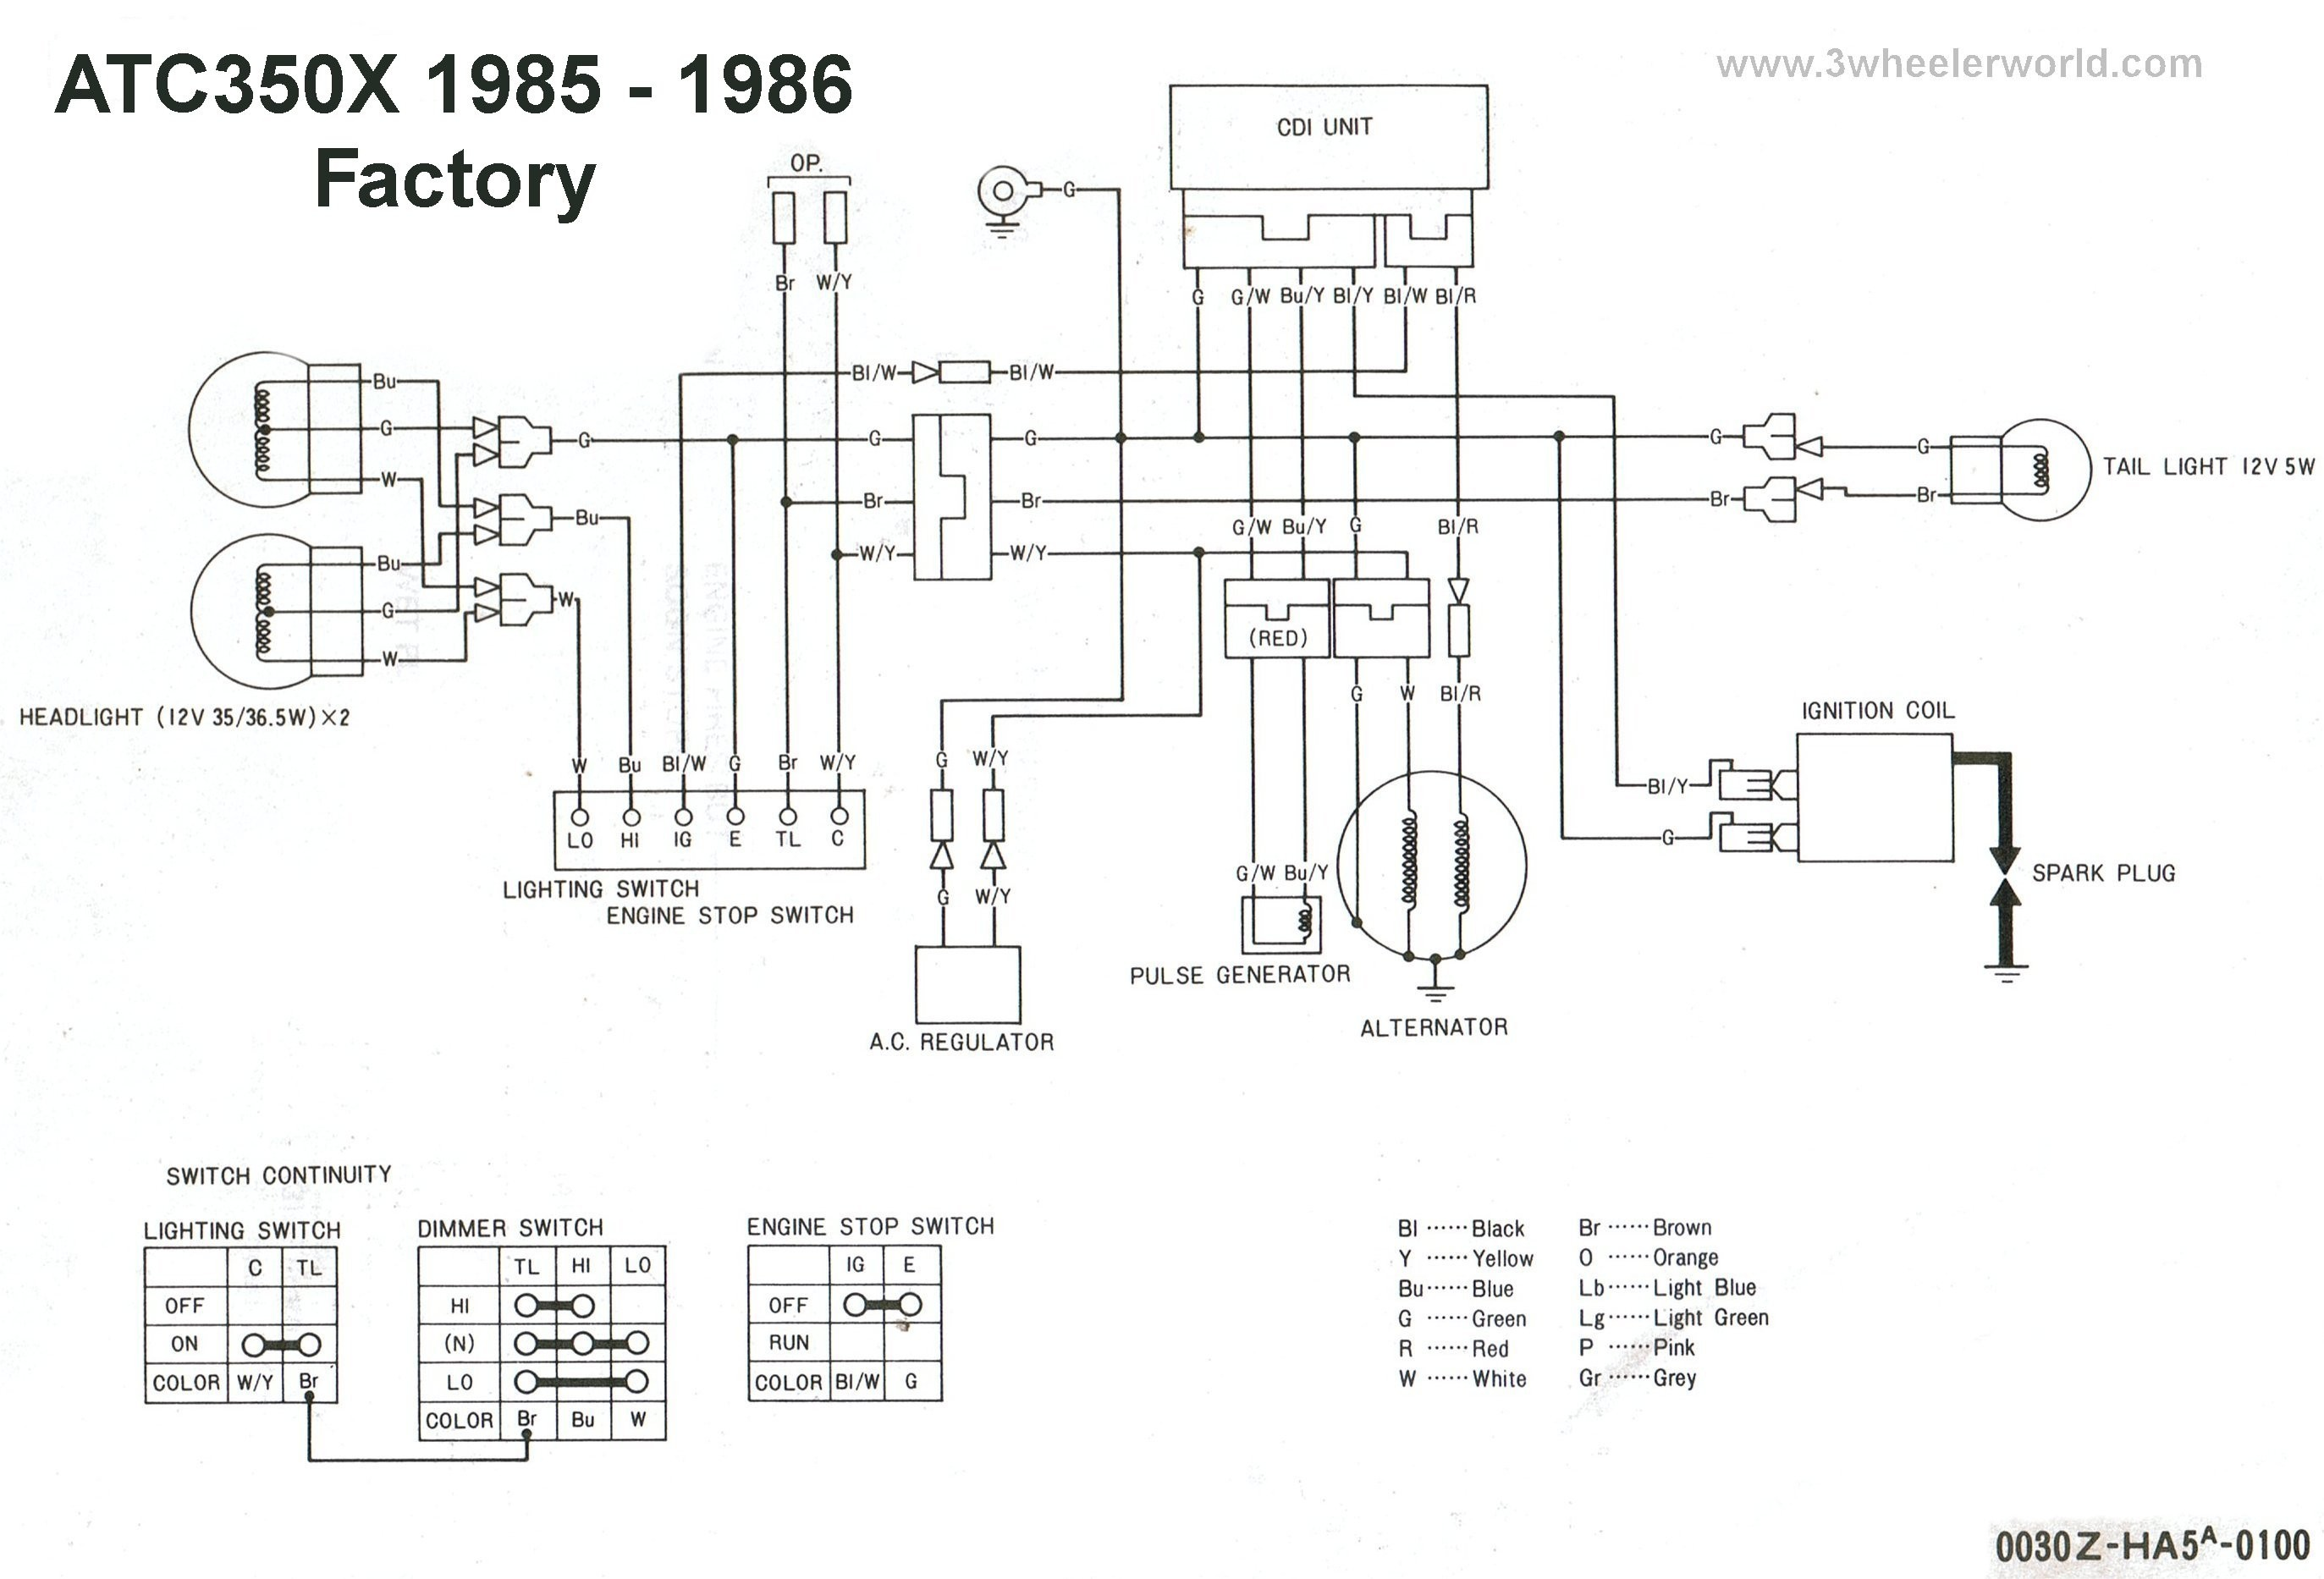 Wiring Diagram Rebel 86 Cmx250honda Vehicle Diagrams Honda Cmx 250 On For 1984 Trx 200 Rh Efluencia Co 450